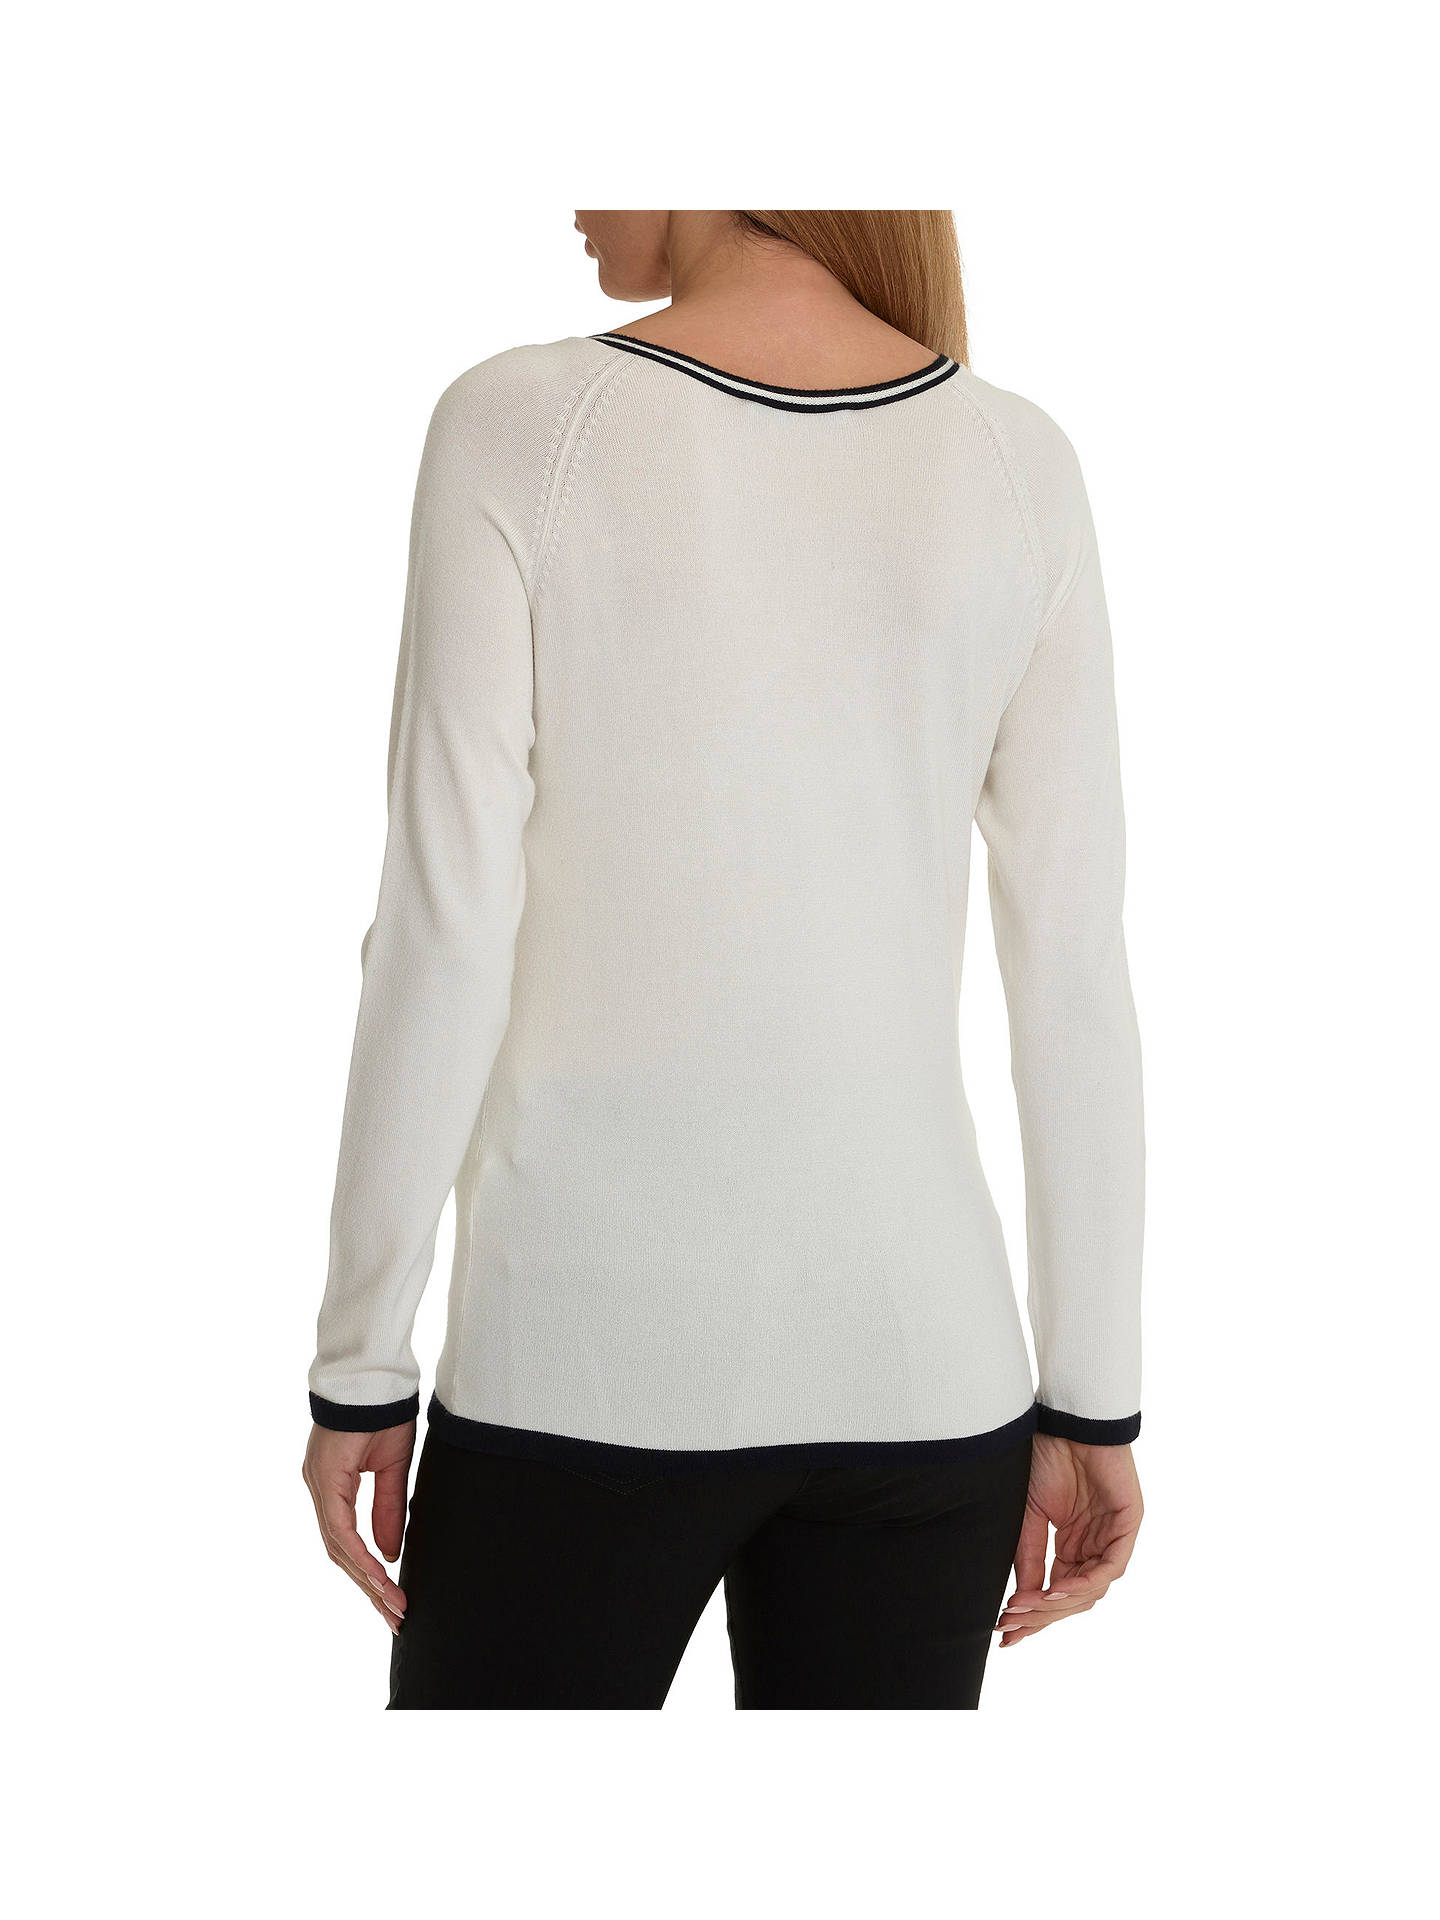 BuyBetty Barclay Embellished Jumper, Cream/Dark Blue, 16 Online at johnlewis.com